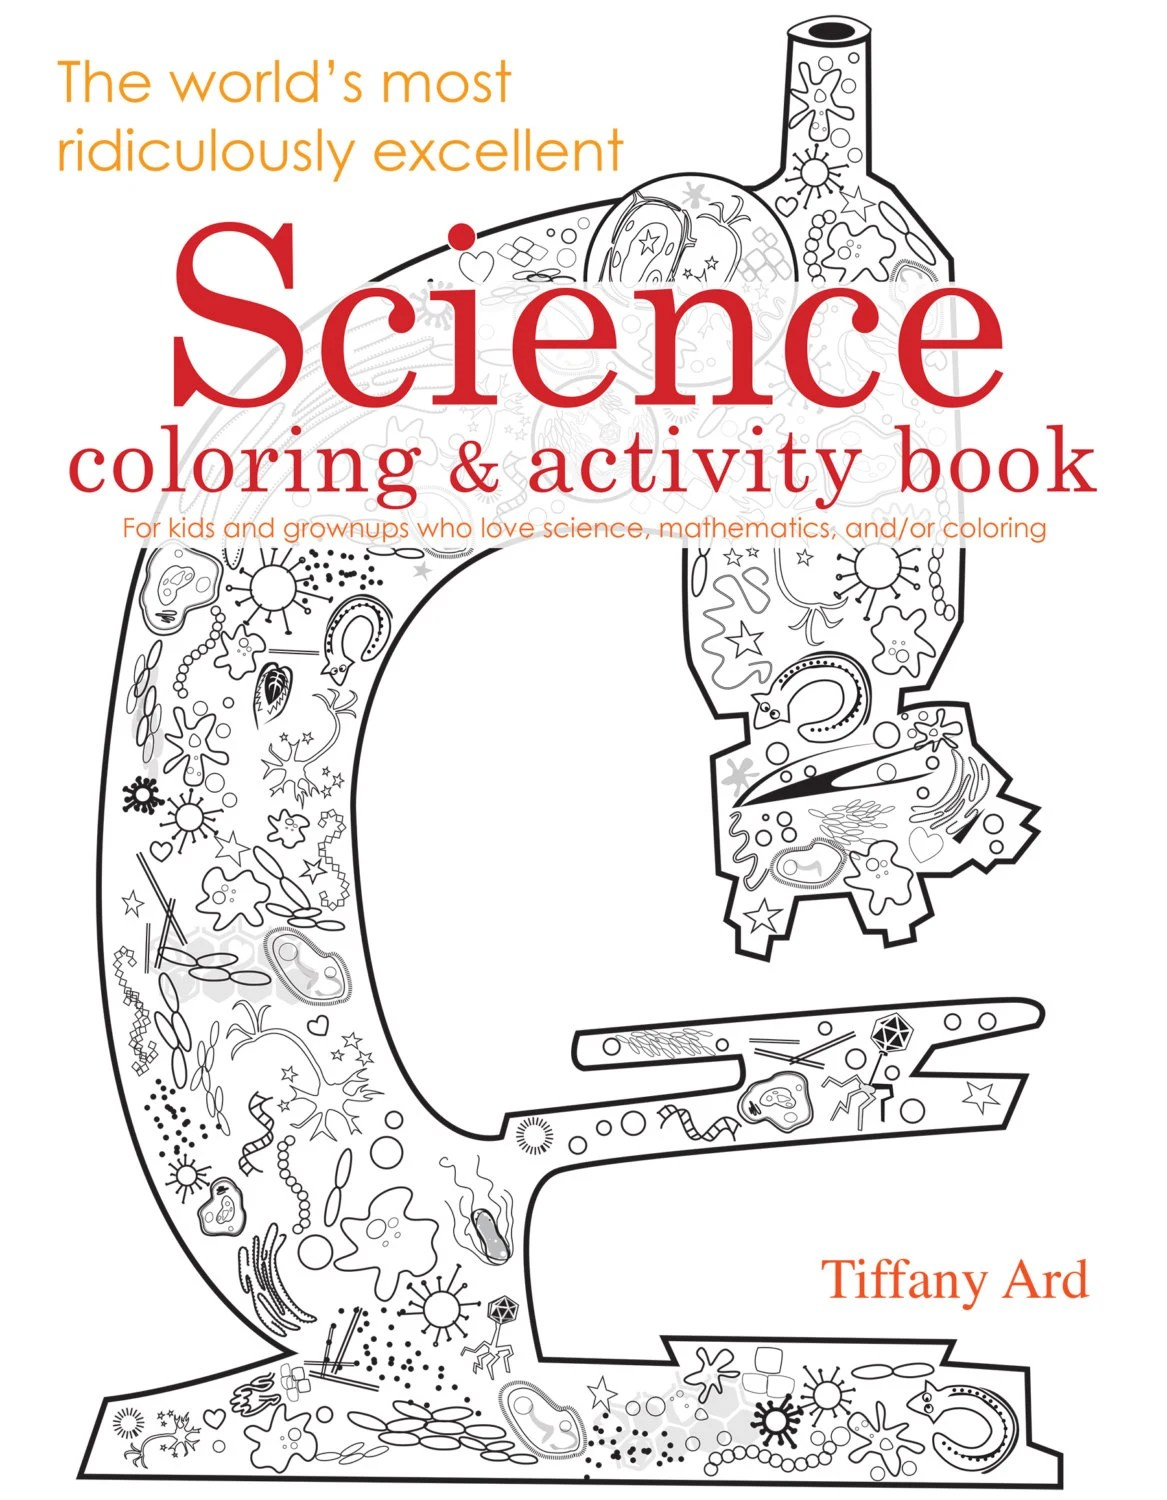 Science Coloring And Activity Book By Electricboogaloo On Etsy